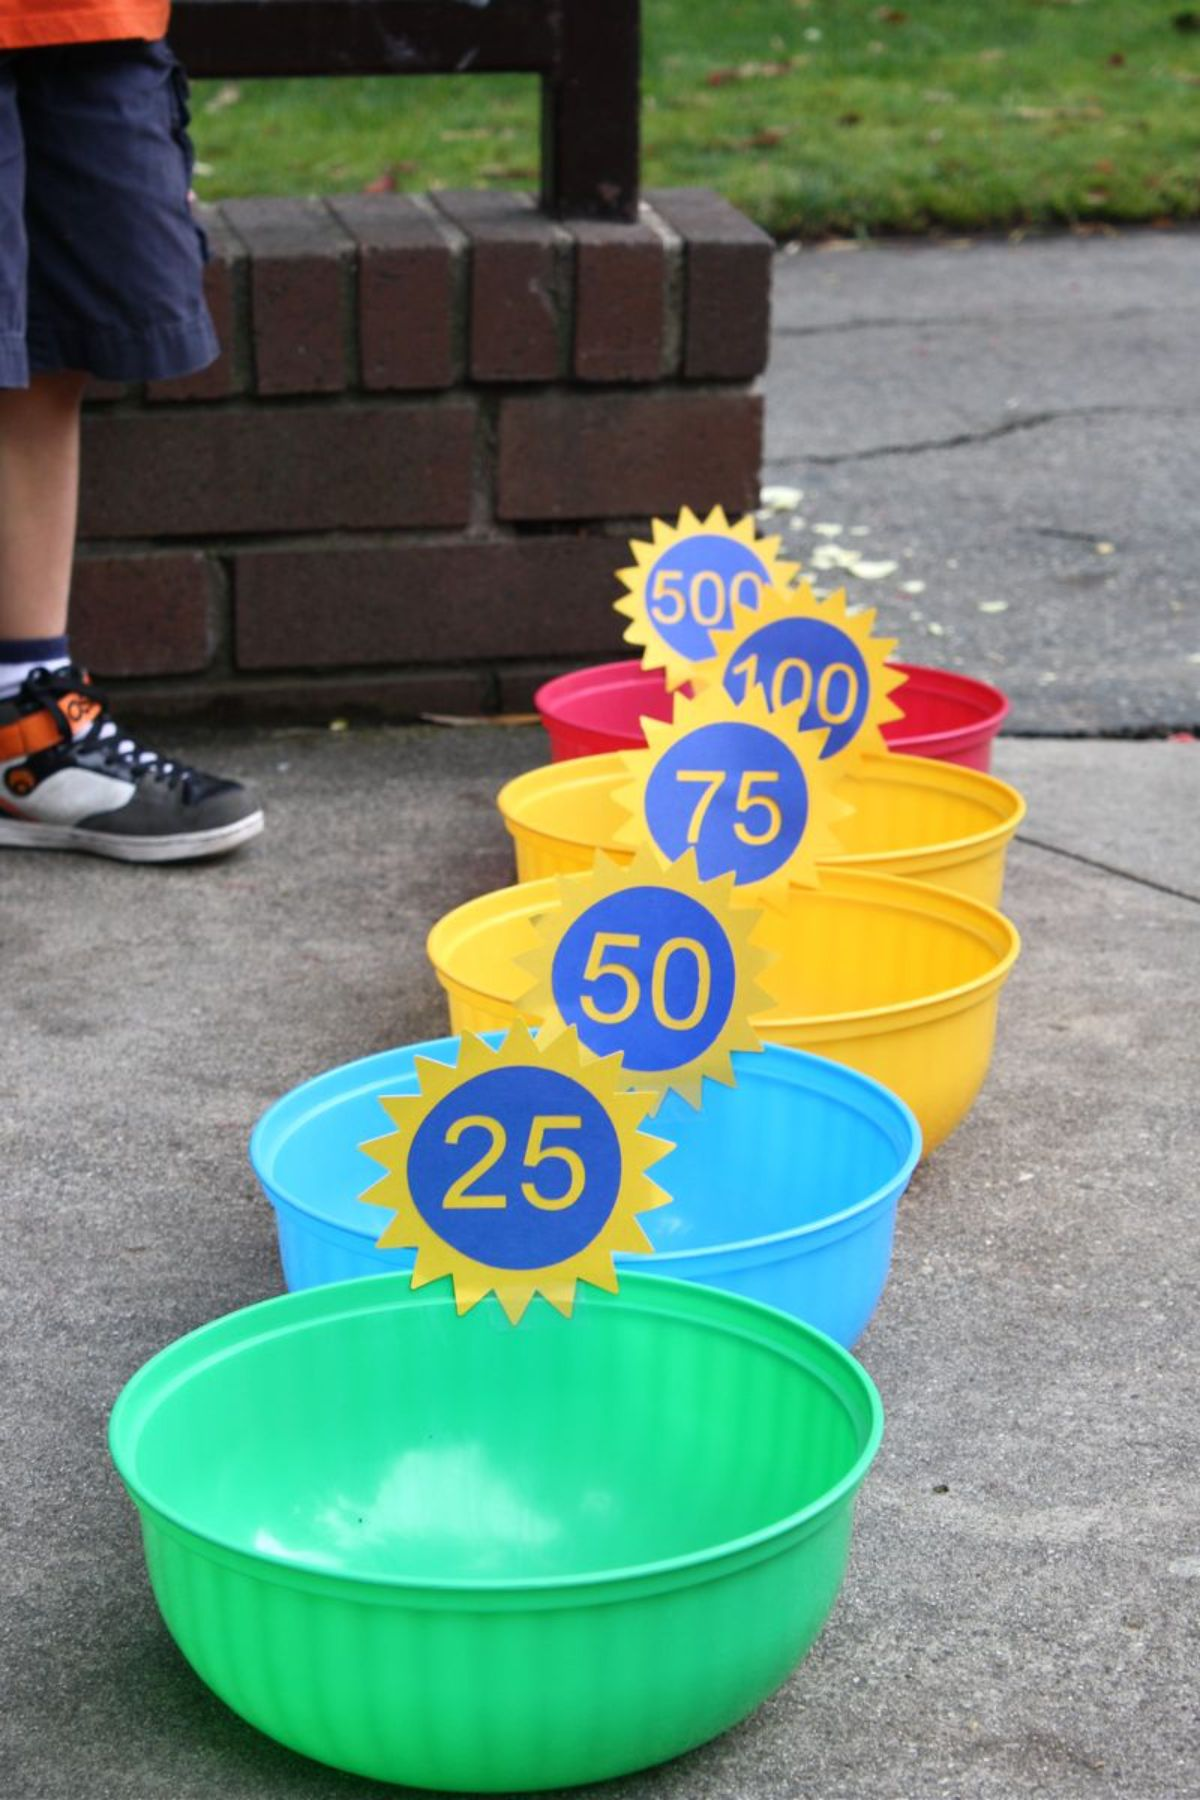 on a patio multi-colored plastic bowls are in a line. They are numbered 25, 50, 75, 100, and 500. You can see a boy's feet in the background